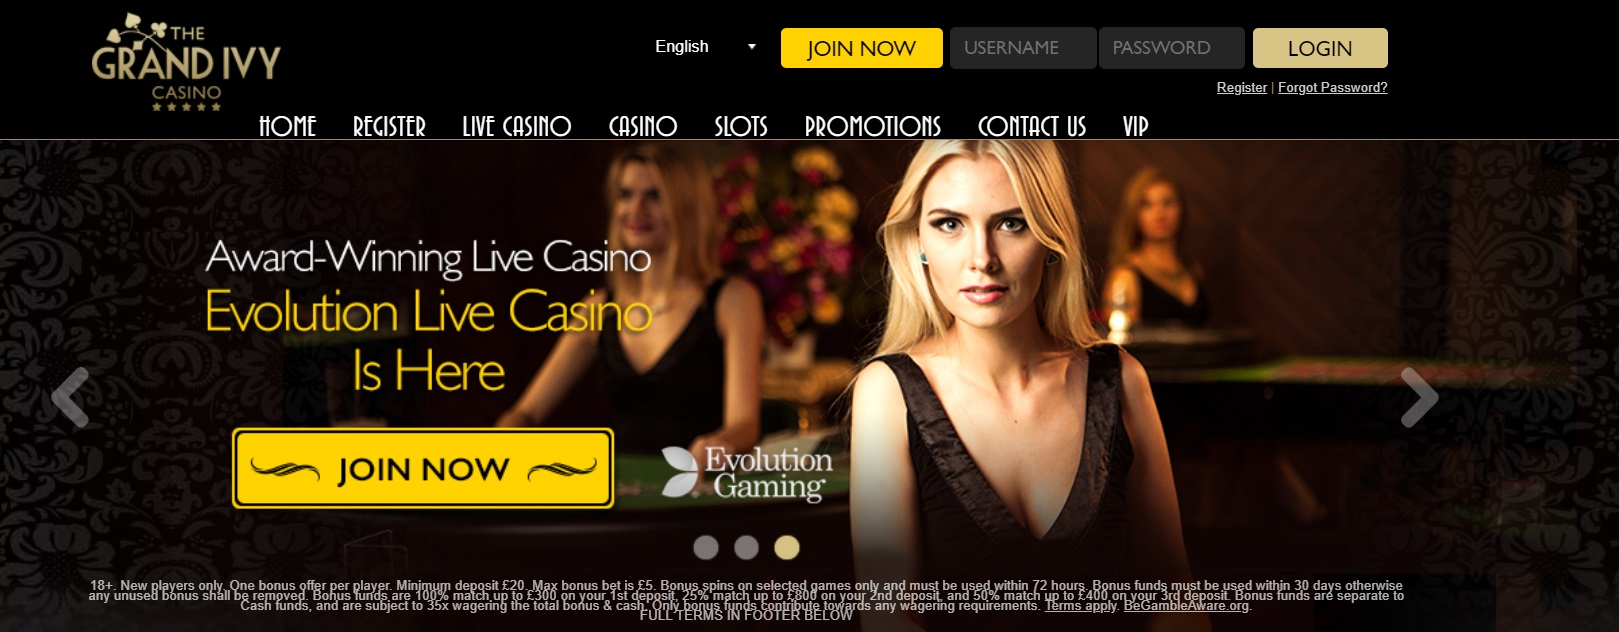 the grand ivy casinogames and slots